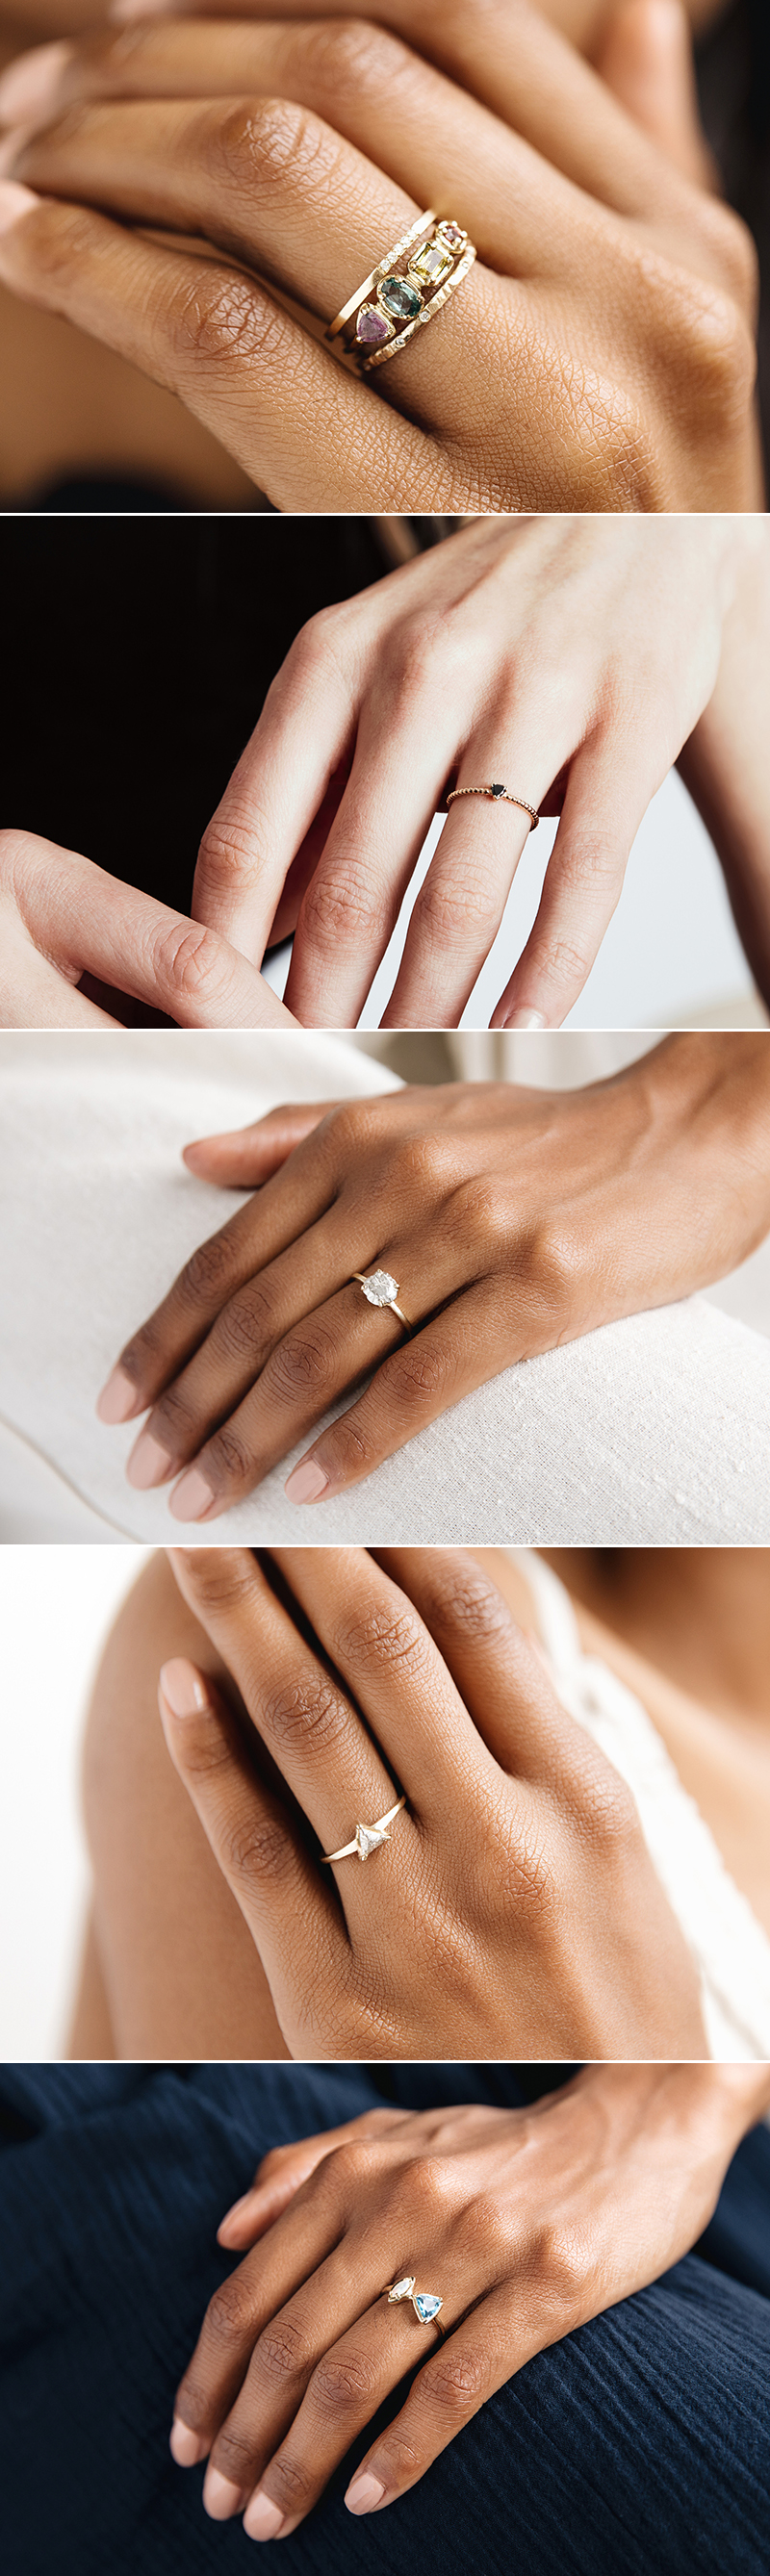 Alternative Hand-crafted Non-Traditional Engagement Rings